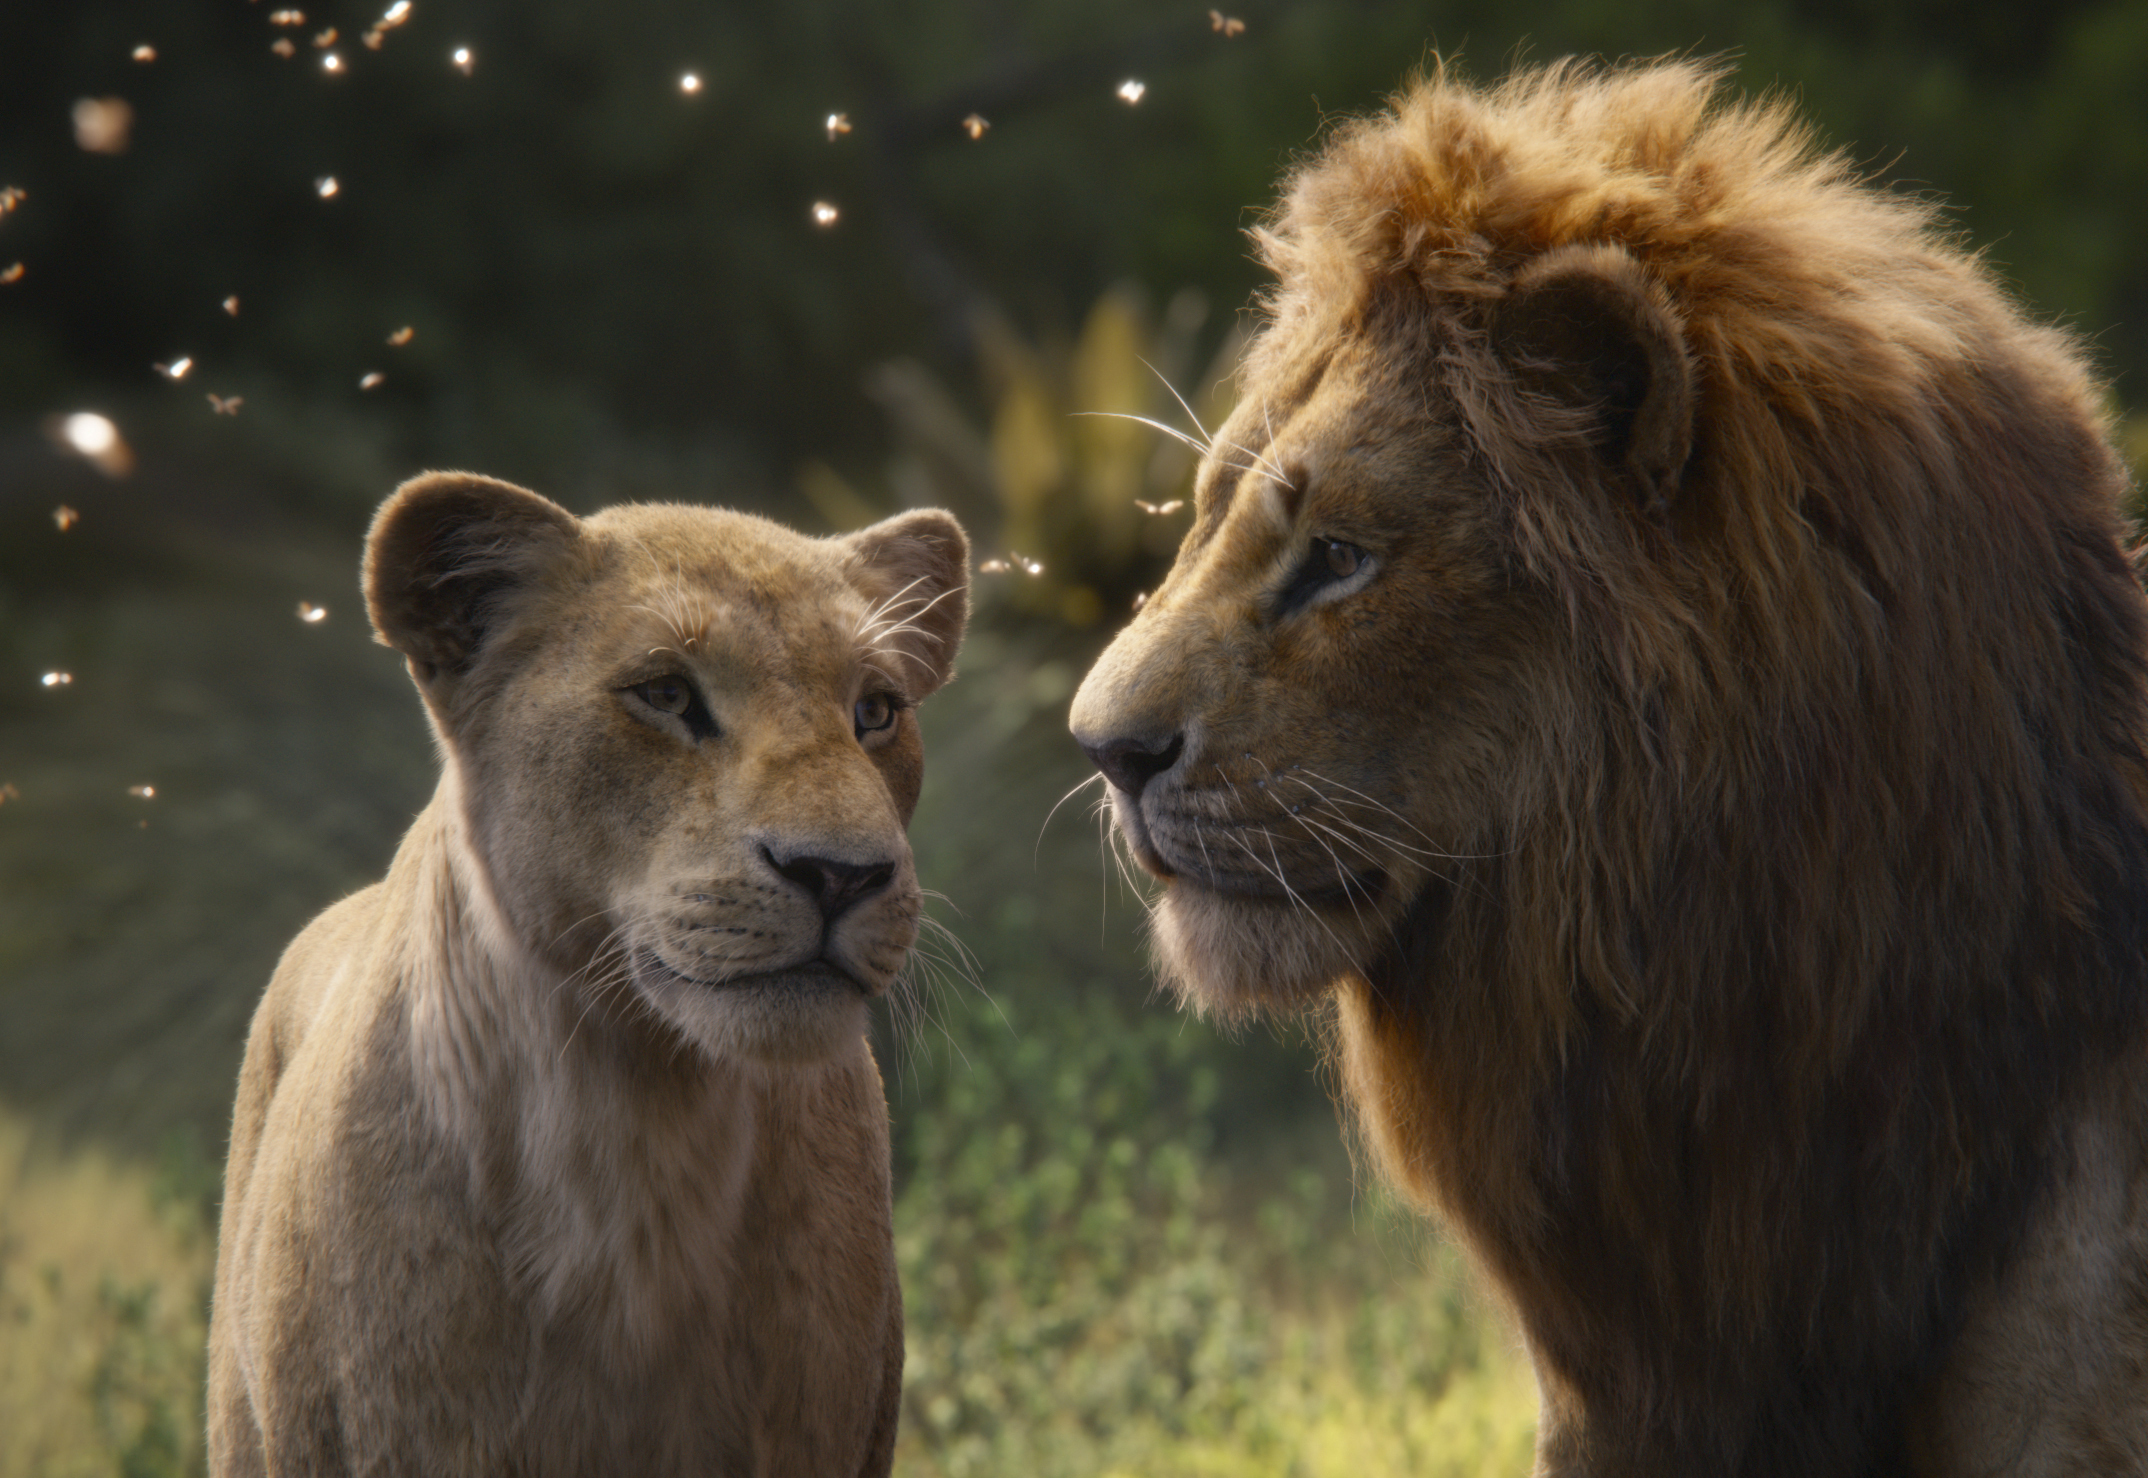 """Nala, voiced by Beyoncé Knowles-Carter (left) and Simba, voiced by Donald Glover in a scene from """"The Lion King."""""""